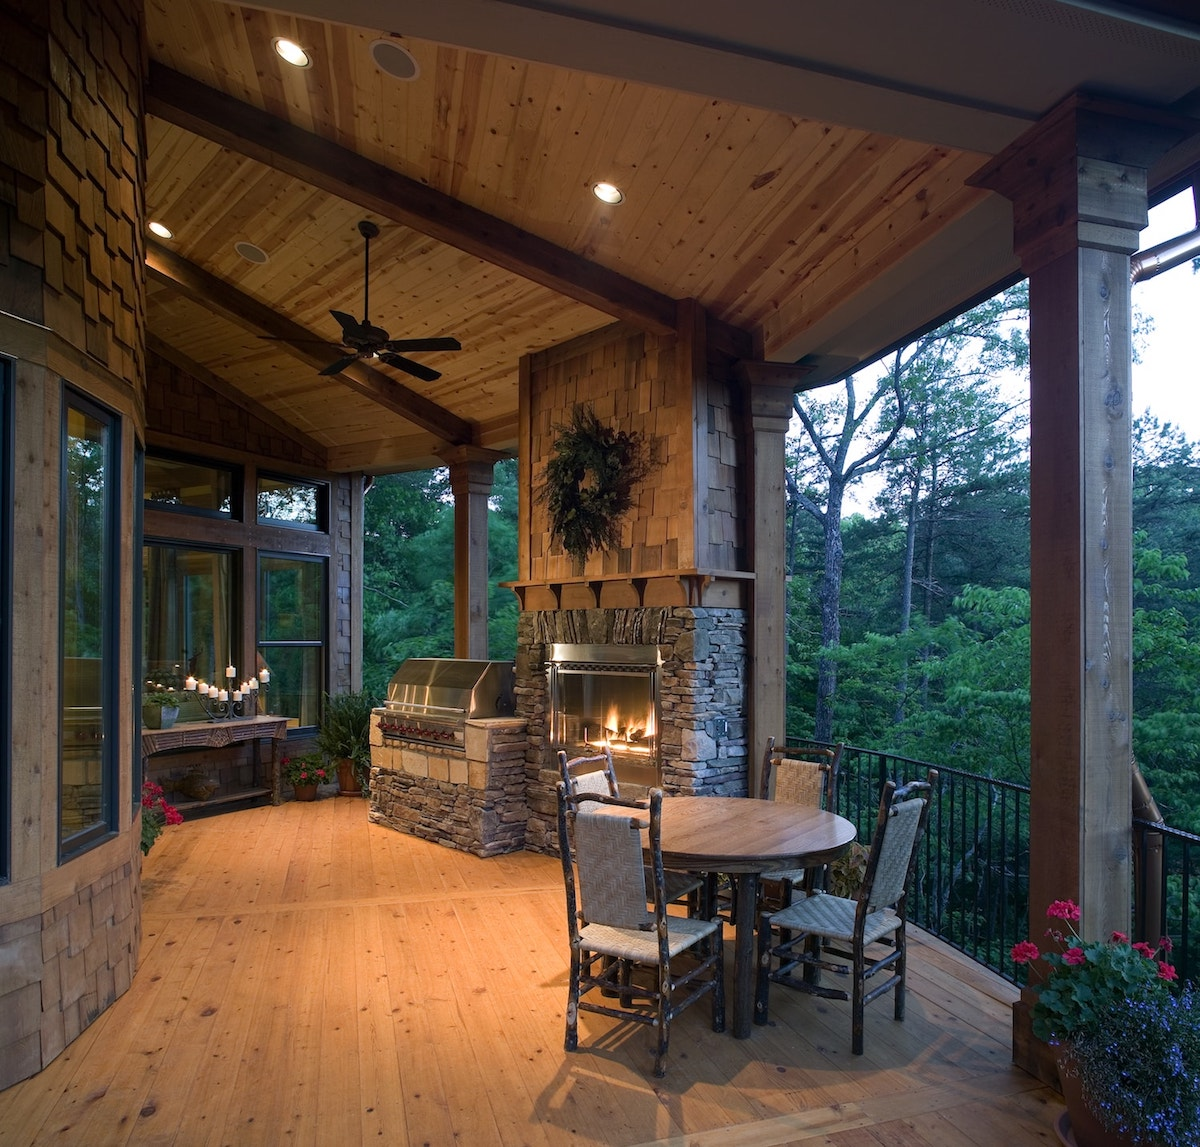 How To Choose The Right Flooring For Your New Home's Porch